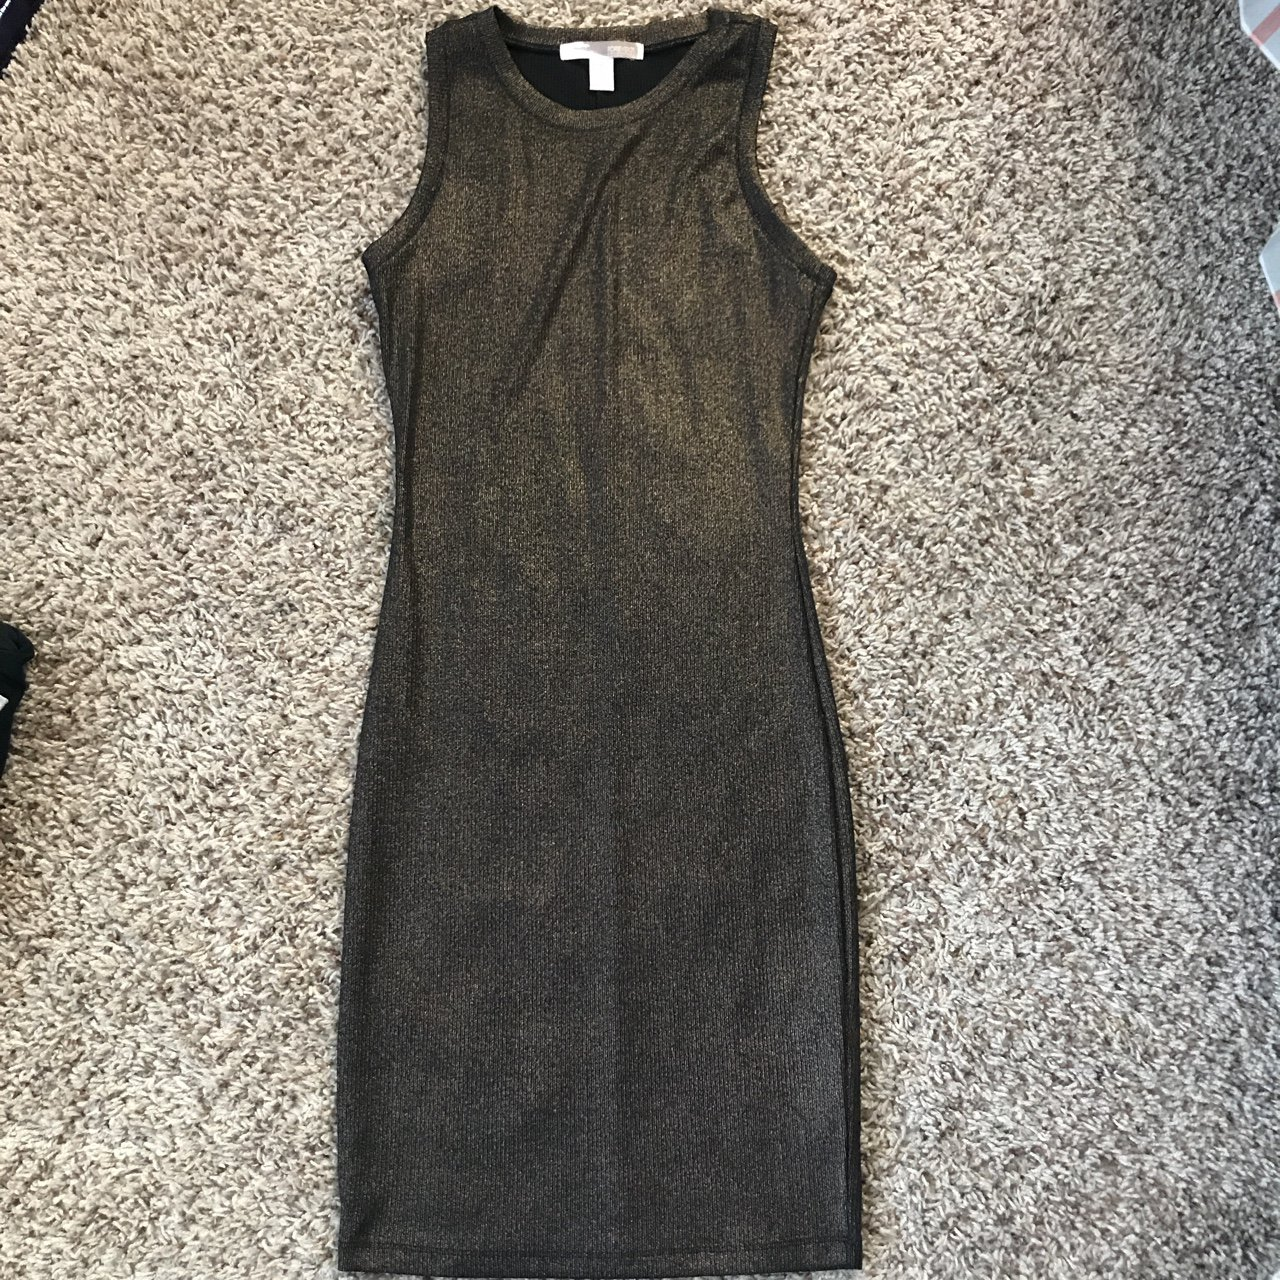 8b8921ce9545 @nailsalwaysdid. 11 months ago. San Jose, United States. Forever 21 mid  length dress. Worn once. Metallic gold/black